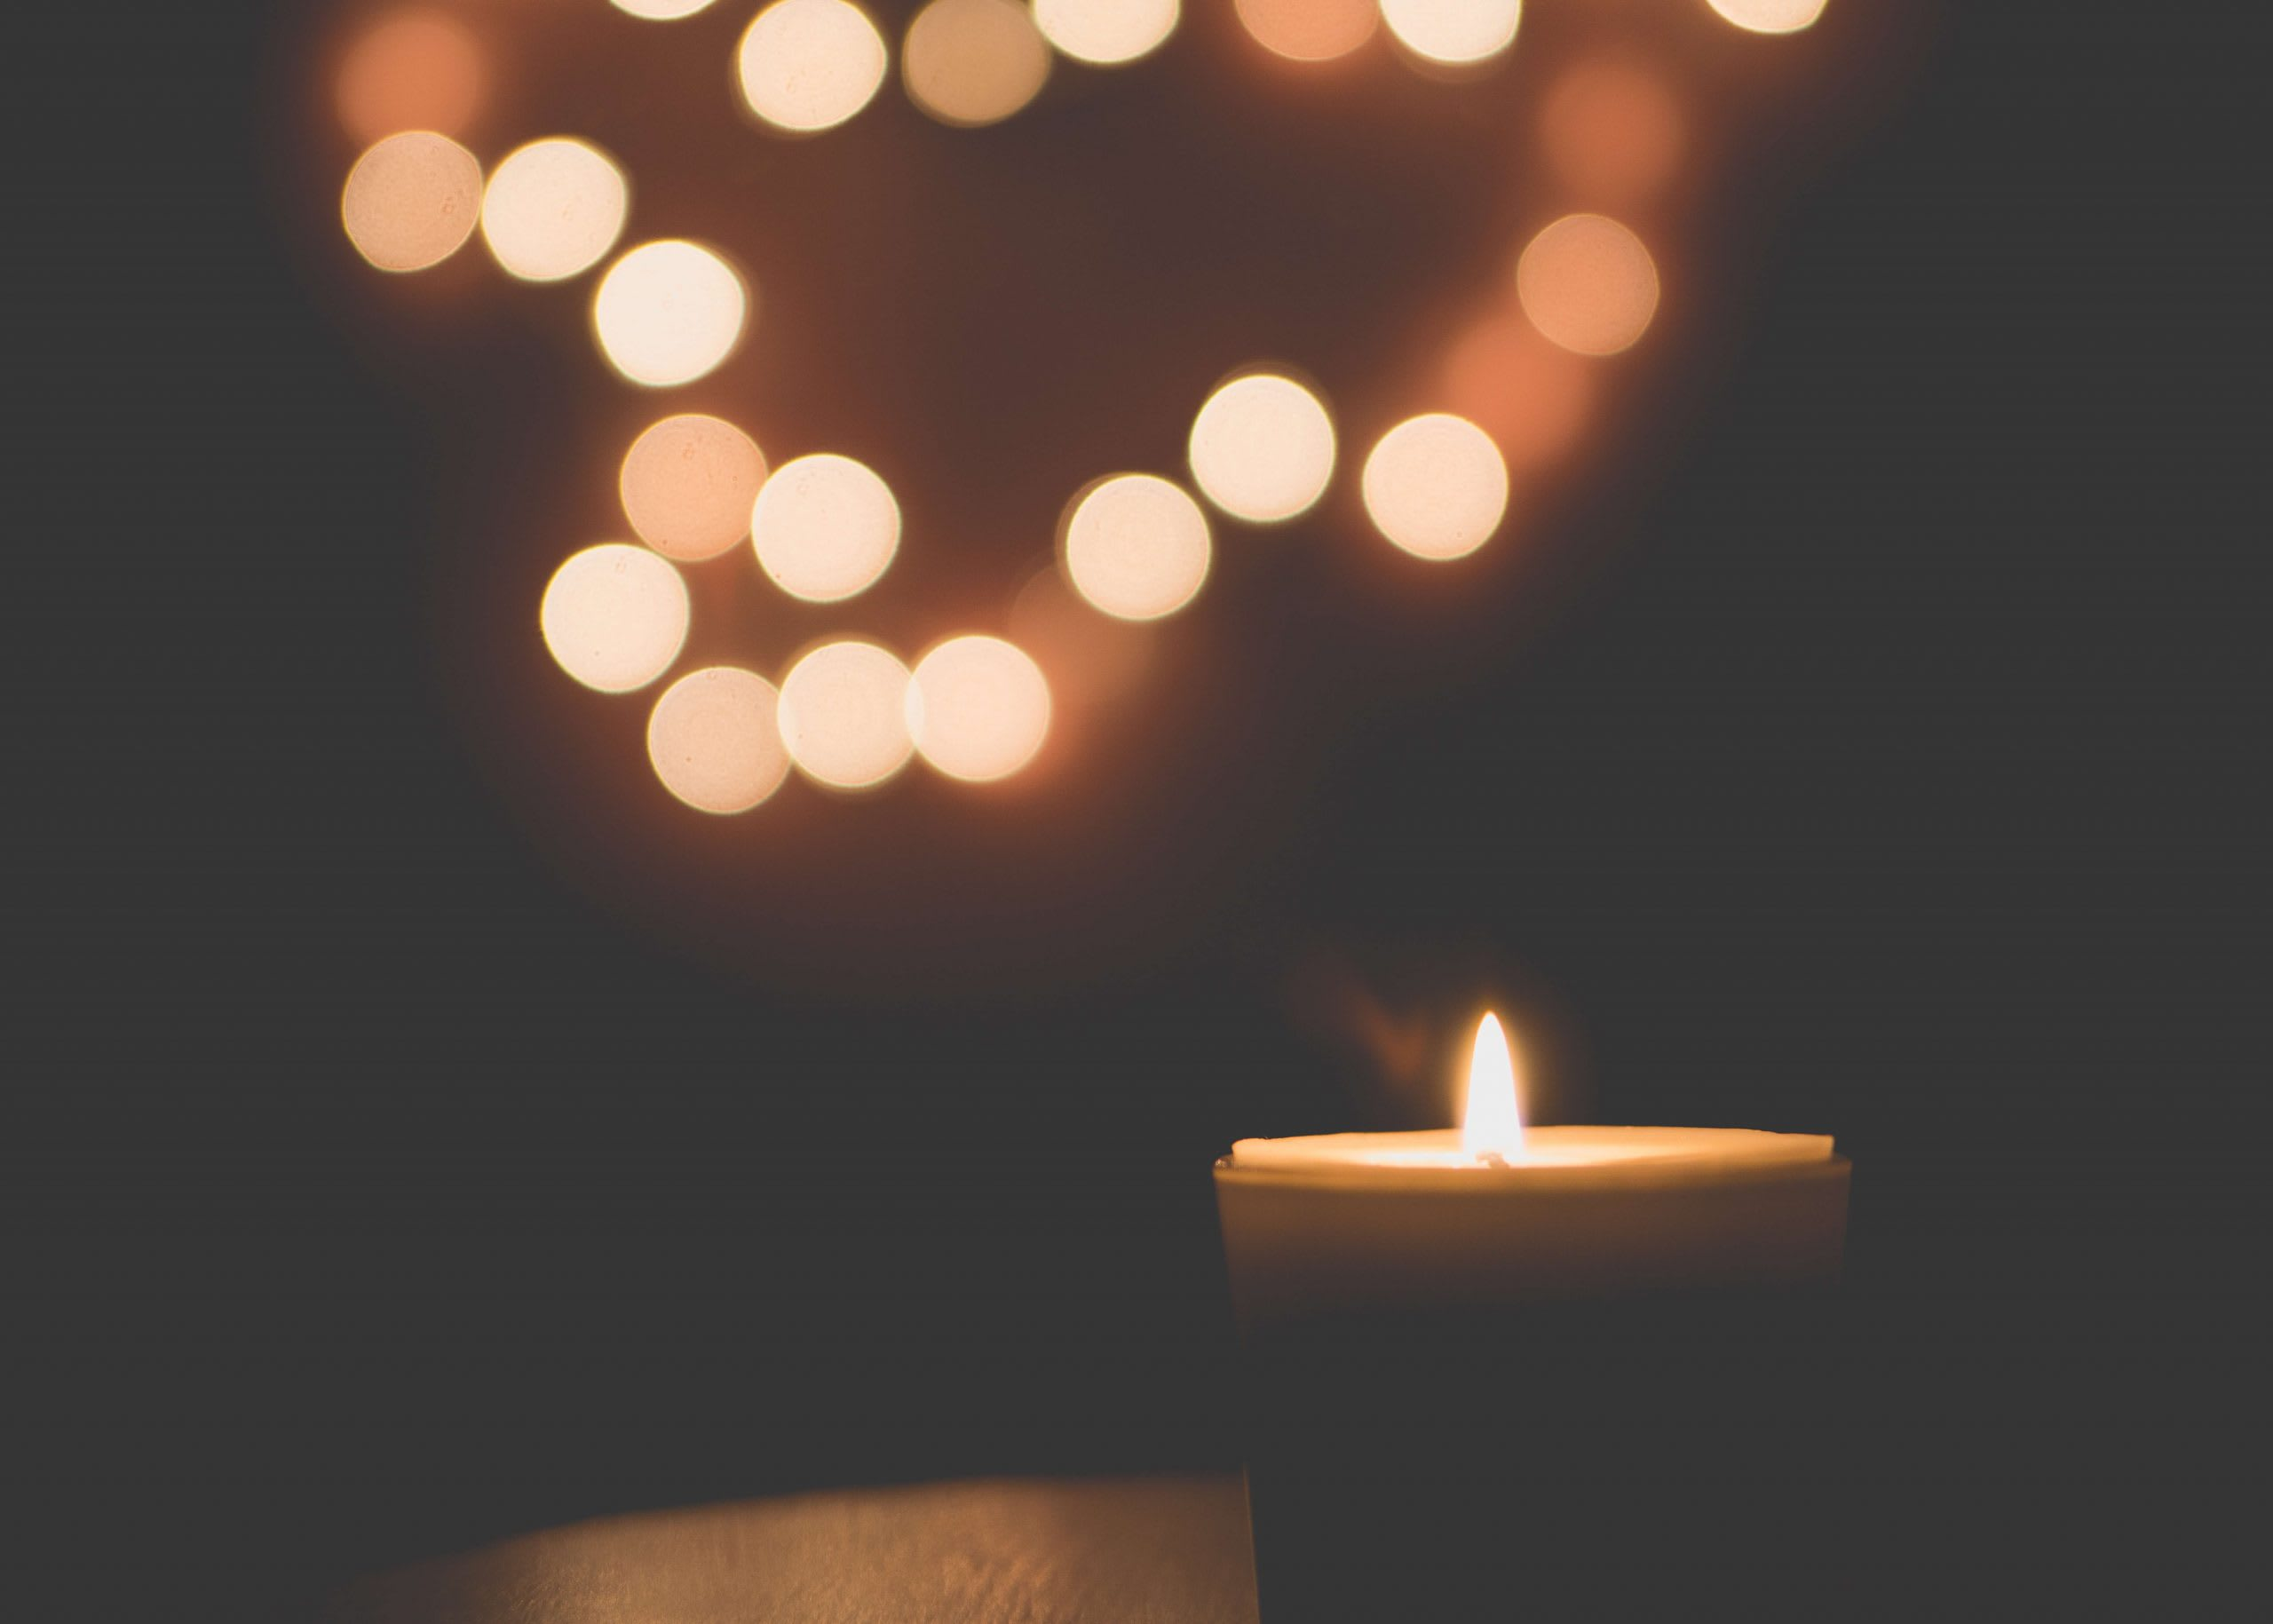 A lit candle can help you remember a loved one at Christmas